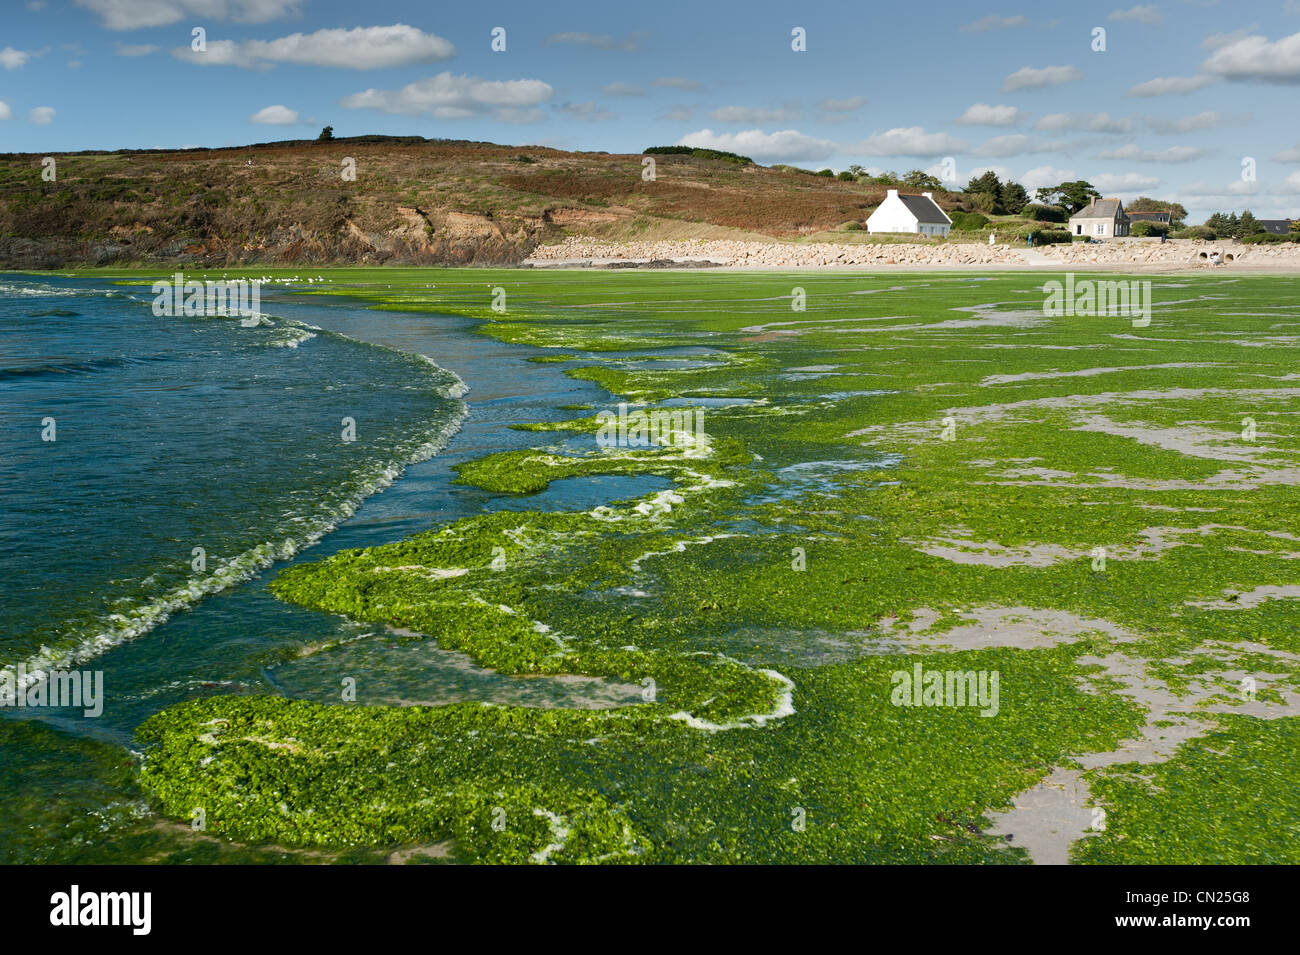 France, Finistere, Baie de Douarnenez, Ploeven, Ty an Quer beach cover by green algae - Stock Image